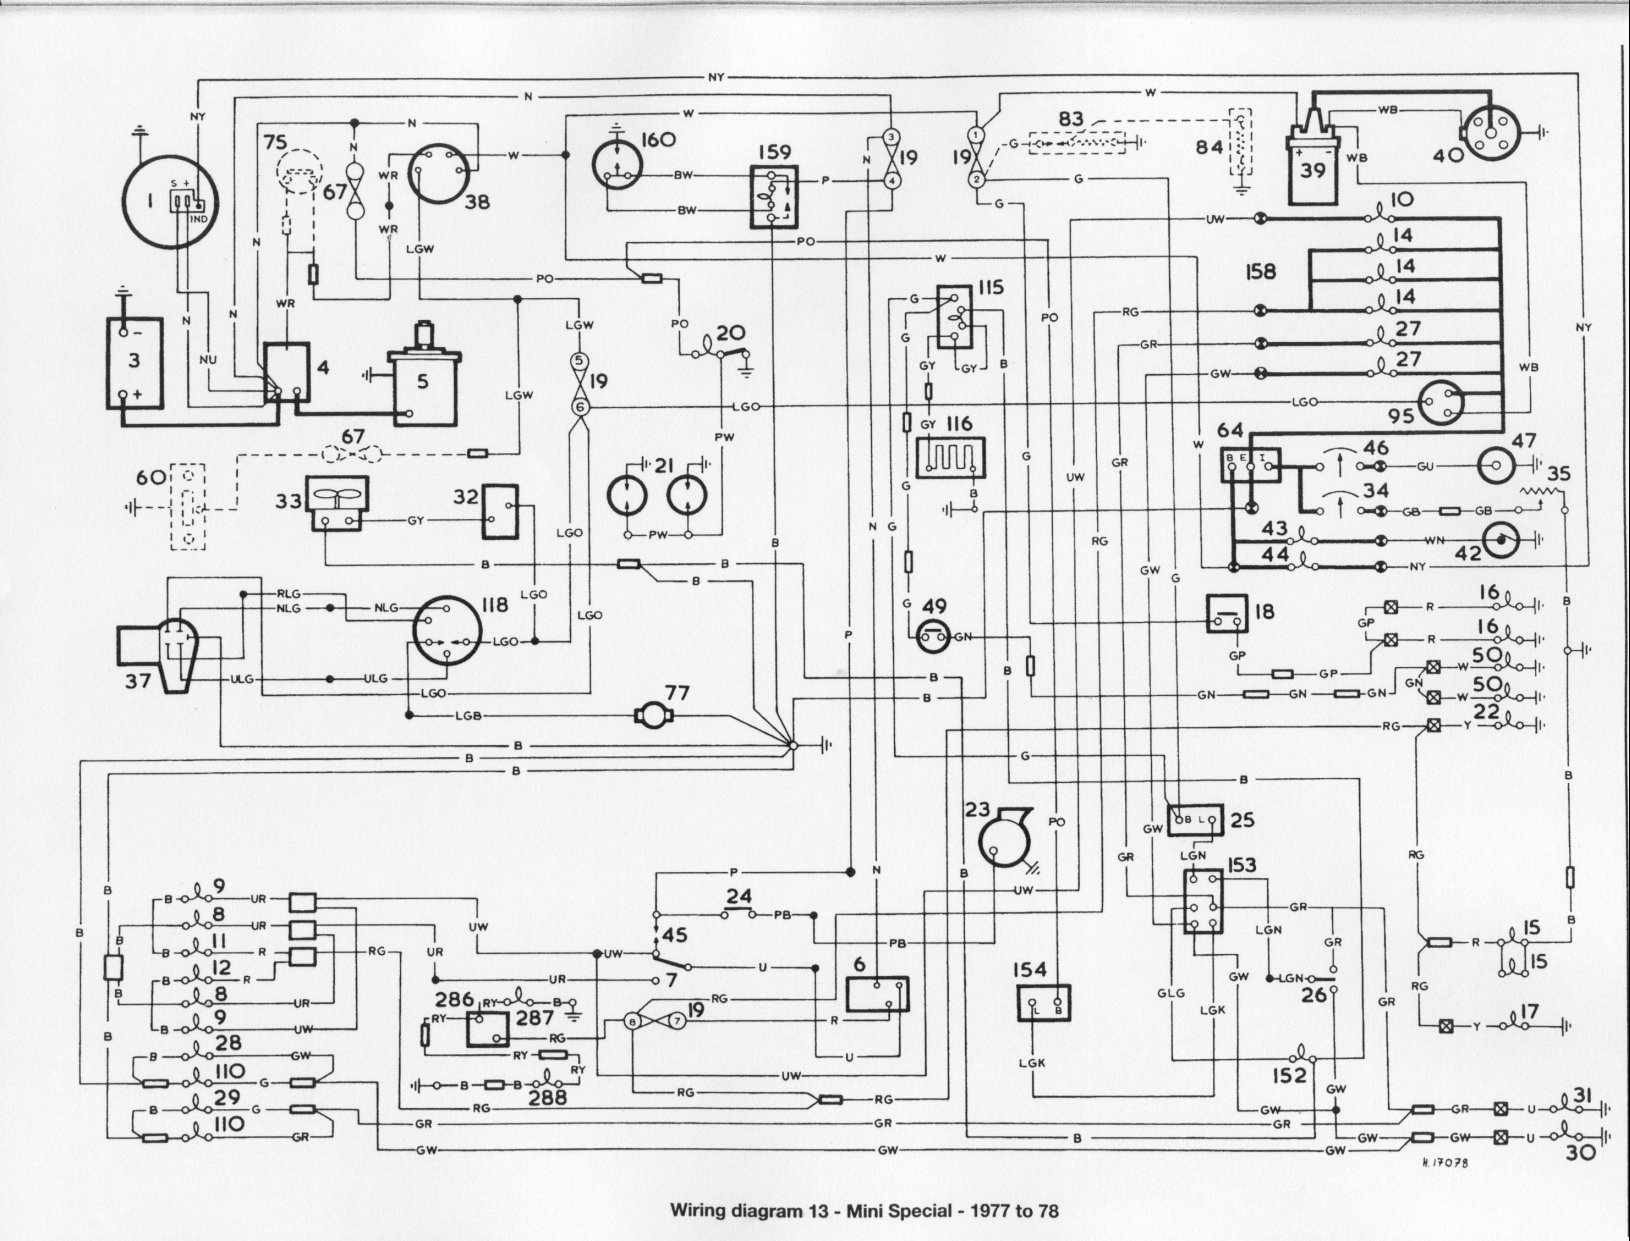 mitsubishi mini truck wiring diagram wire center u2022 rh ayseesra co 2002 mini cooper radio wiring diagram 2002 mini cooper stereo wiring diagram